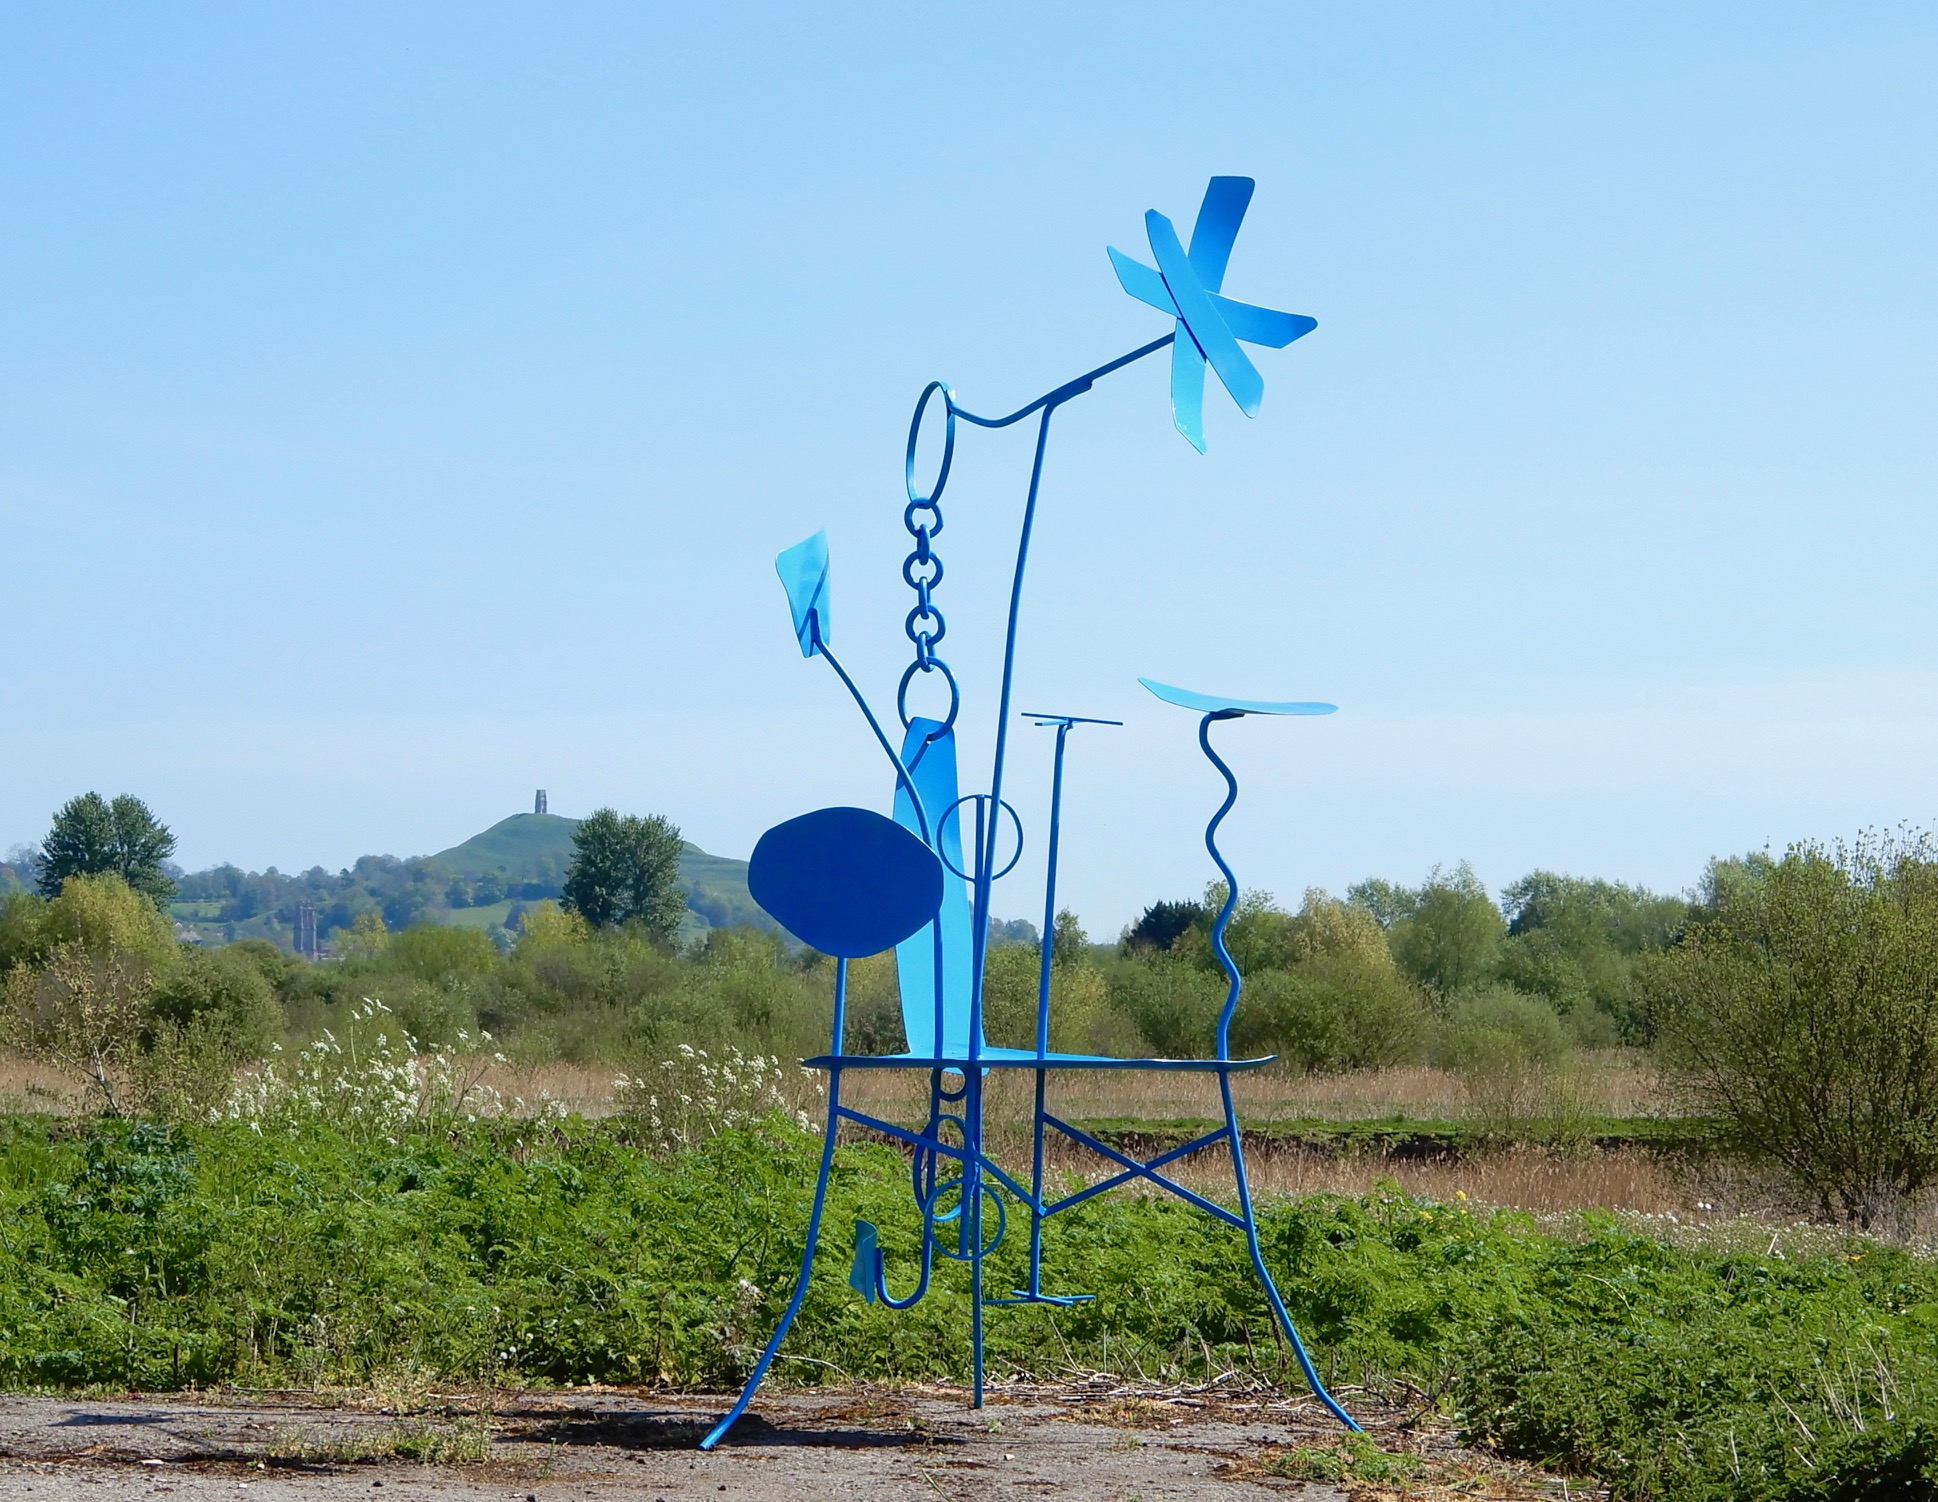 A Kinetic sculpture commissioned for a private client